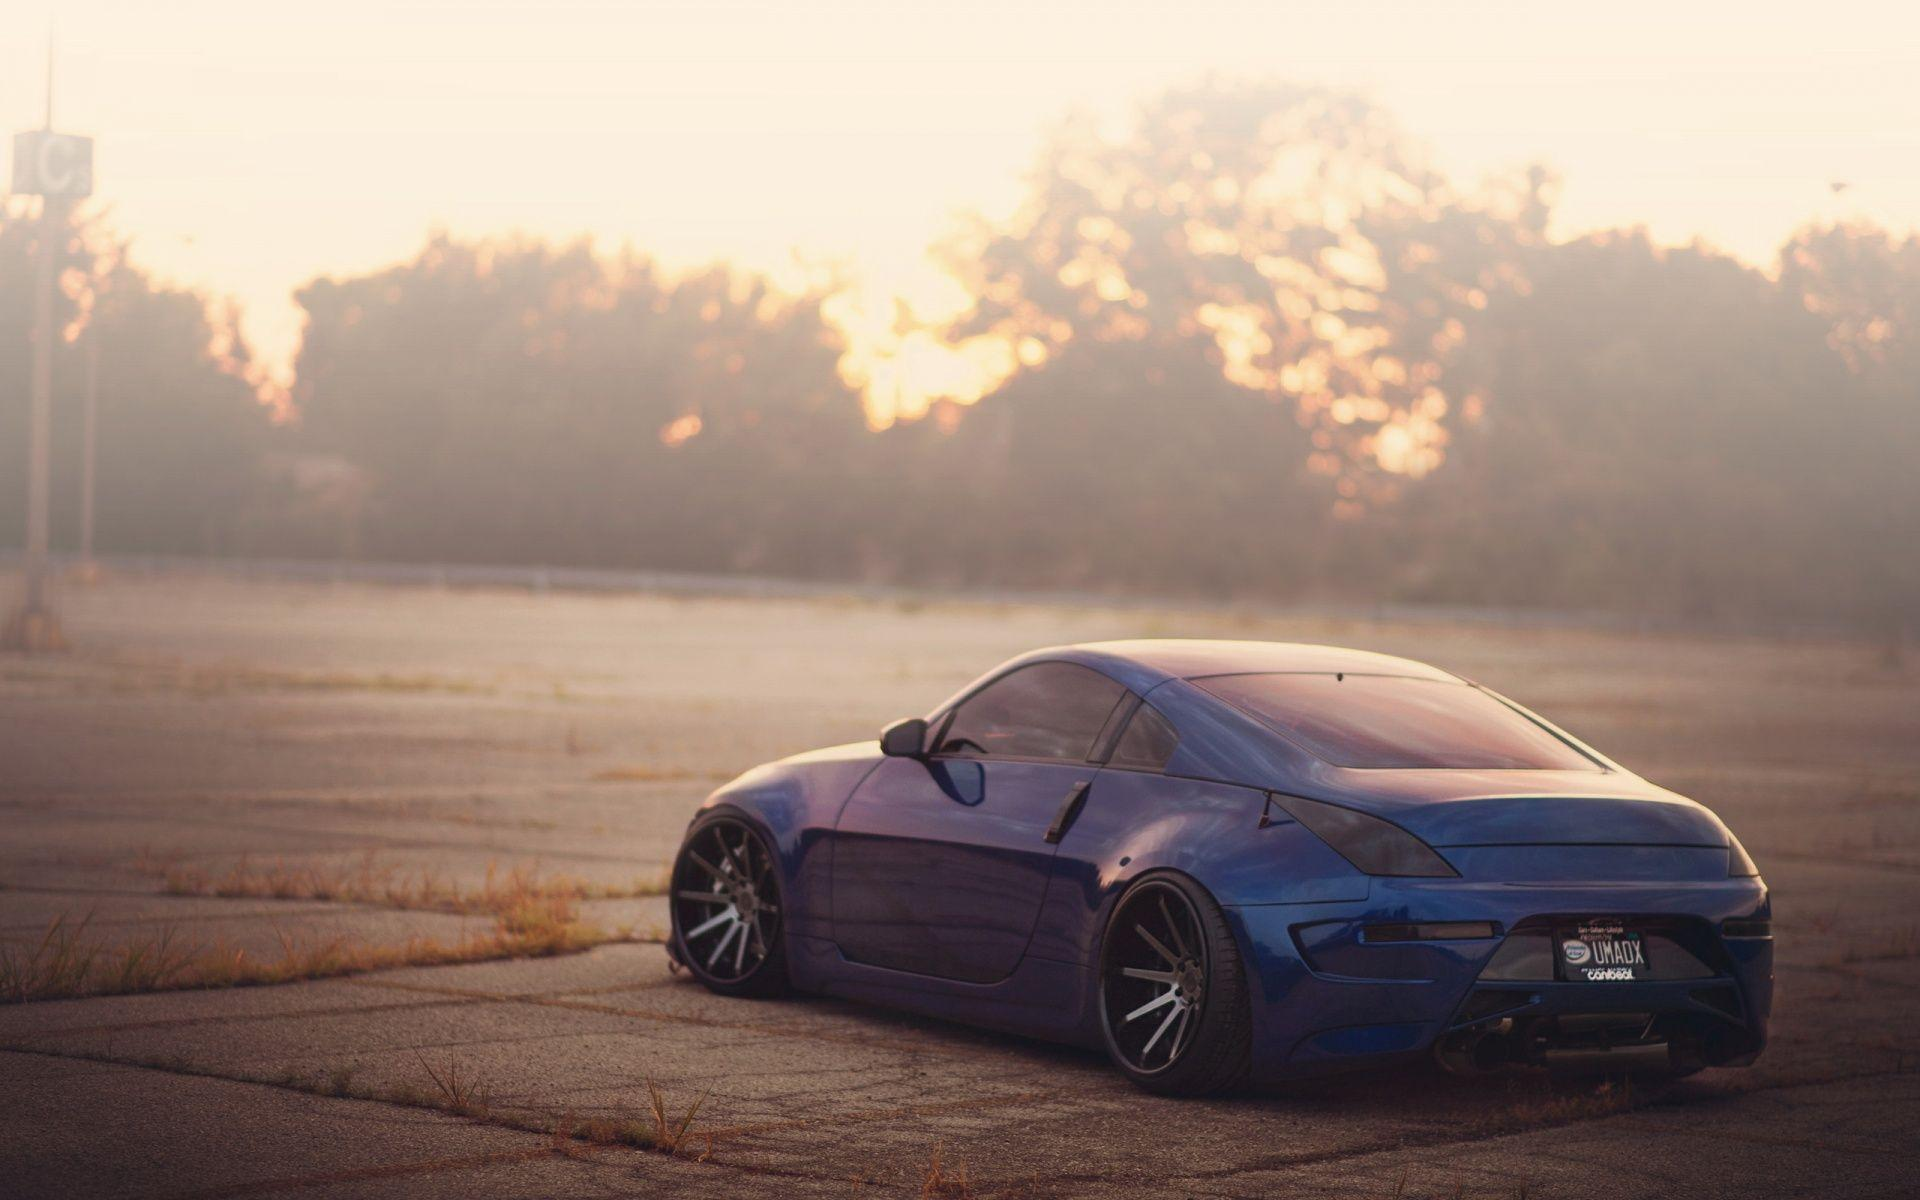 Nissan 350Z blue rear Modified wallpaper for i phones | Nicegraphy